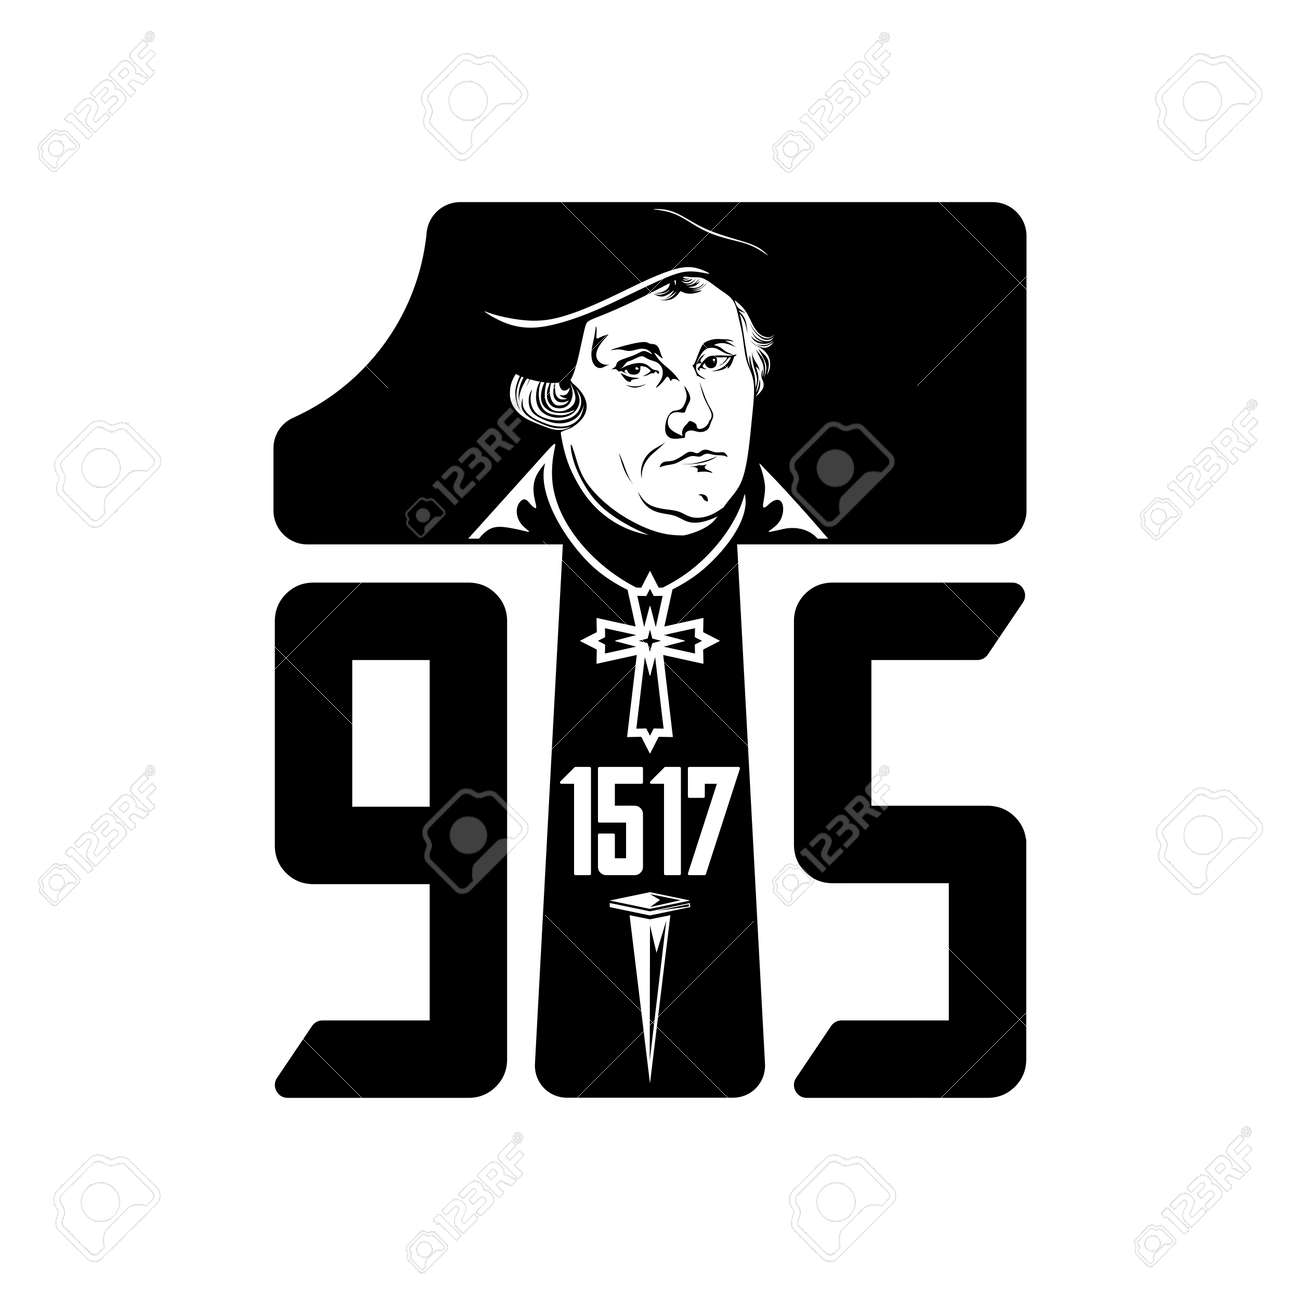 Martin Luther. 95 theses of the reformation of the church. Wittenberg 1517. - 166673460